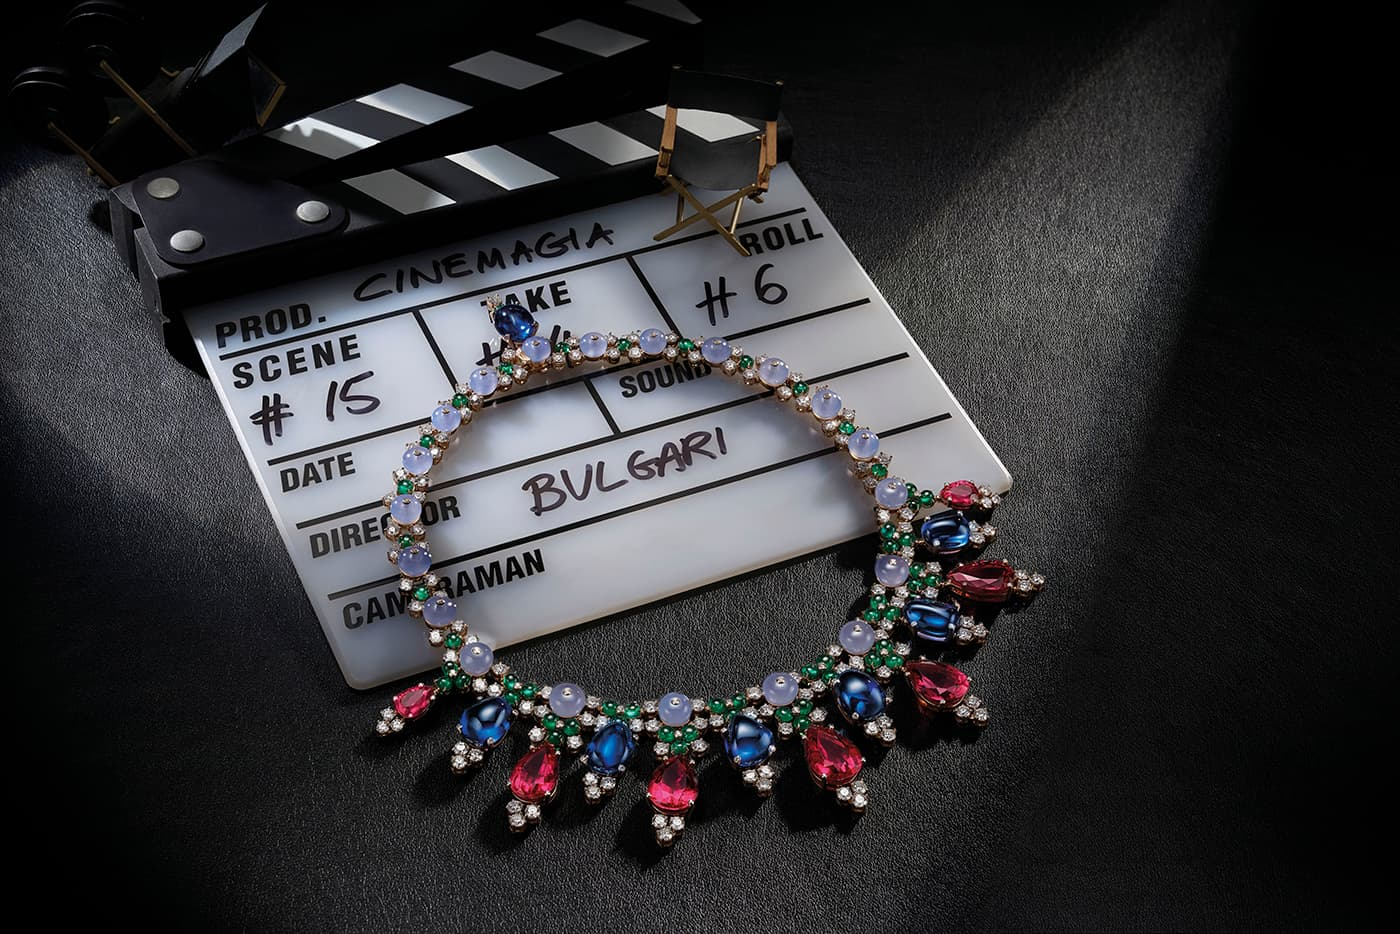 Bvlgari 'Cinemagia' collection necklace with rubellite, sapphire, emerald, diamonds and chalcedony in white gold